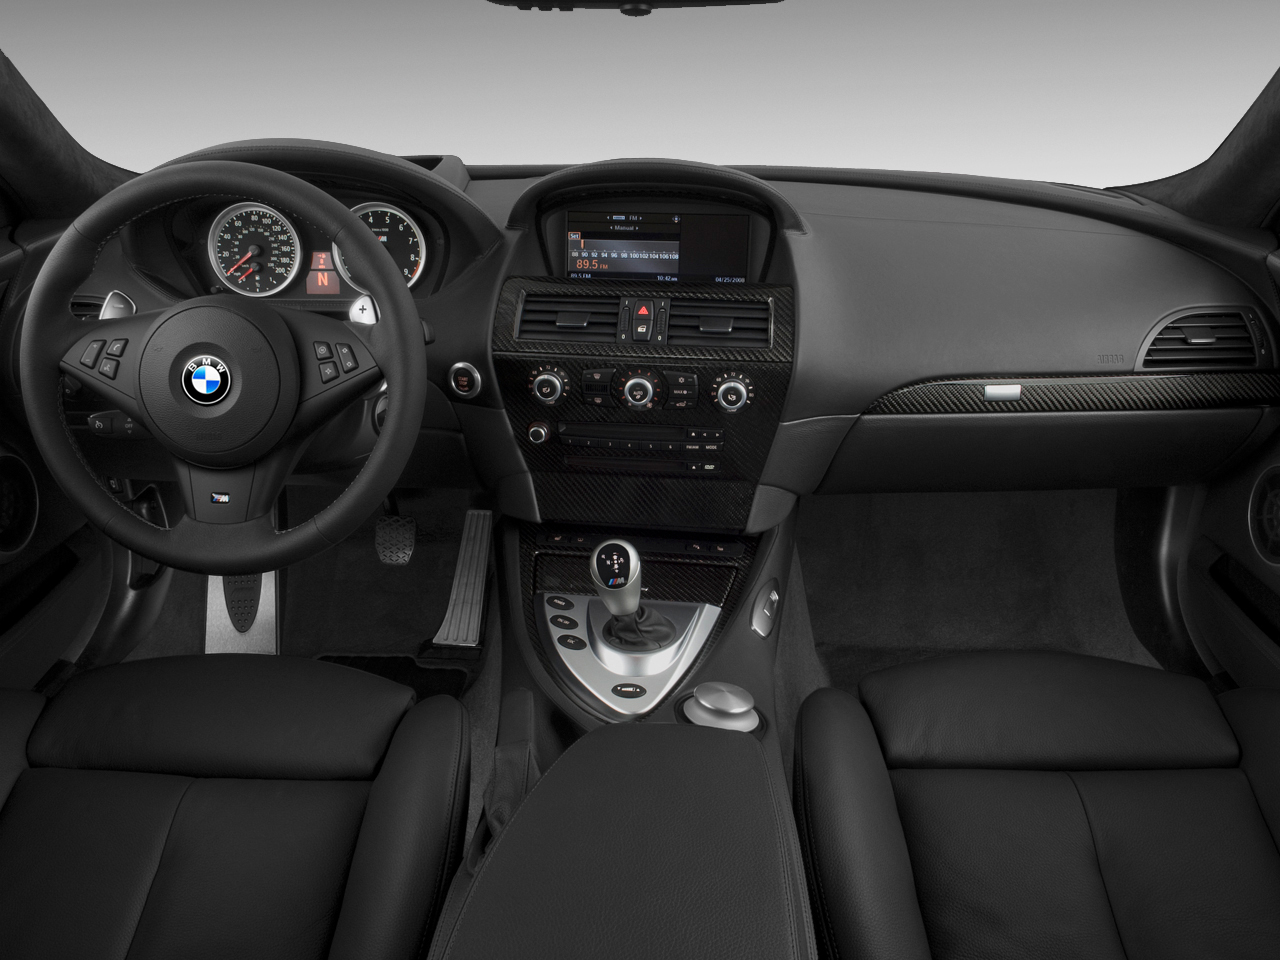 BMW Convertible bmw m6 coupe price in india Assyams Info: BMW M6 Coupe|BMW M6 Coupe Price|BMW M6 Coupe Prices ...